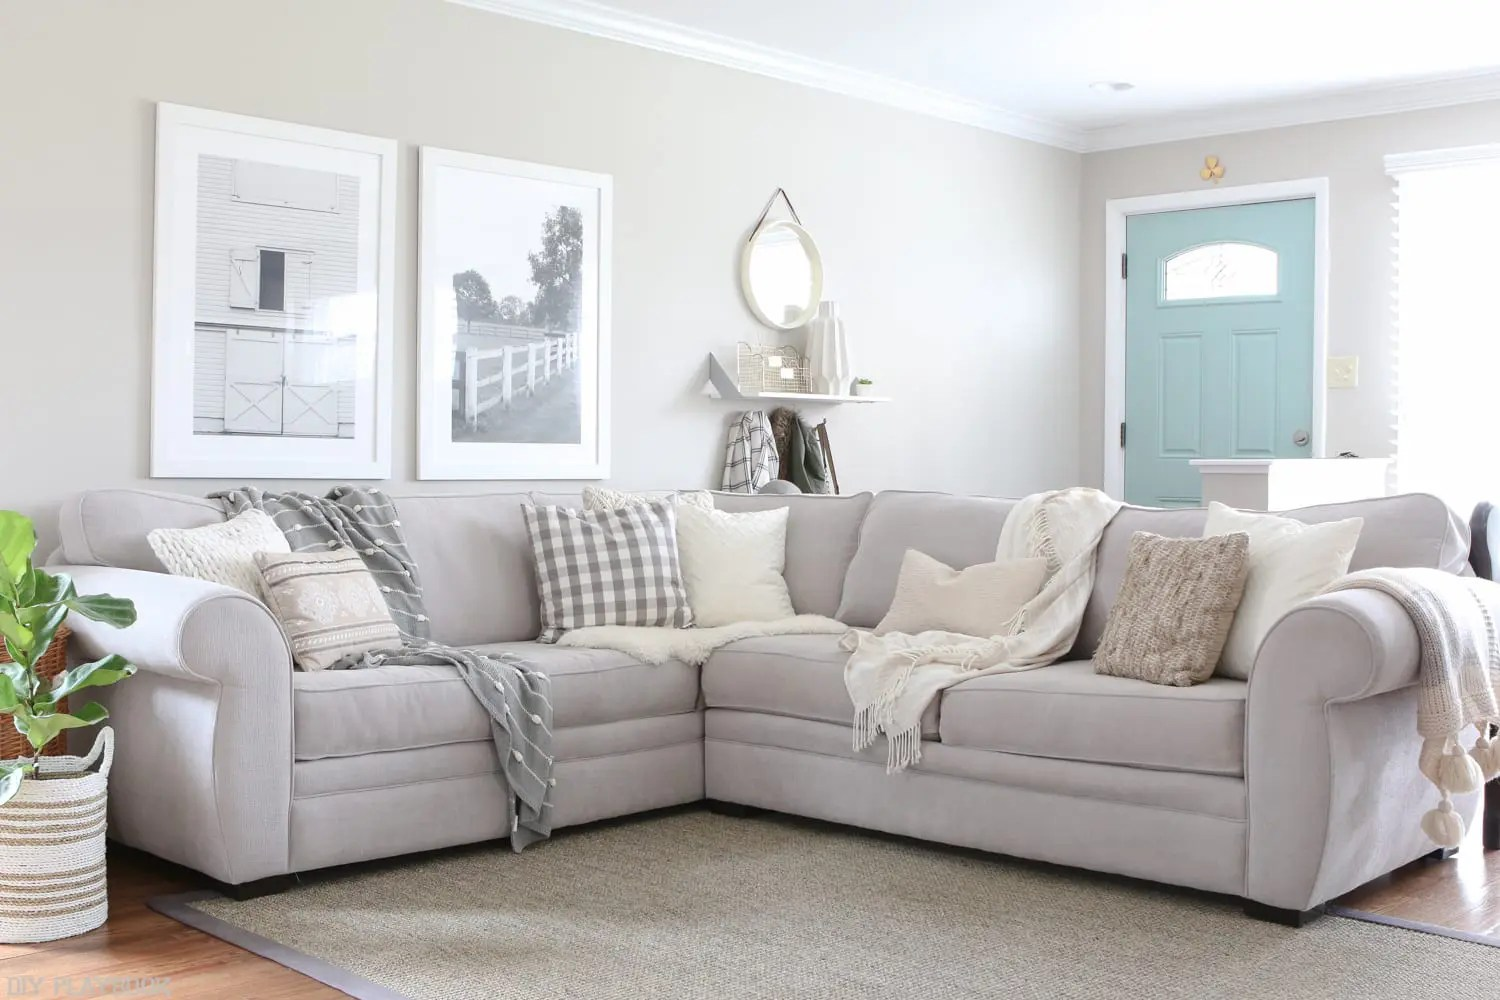 How to Choose Throw Pillows for a Gray Couch  The DIY